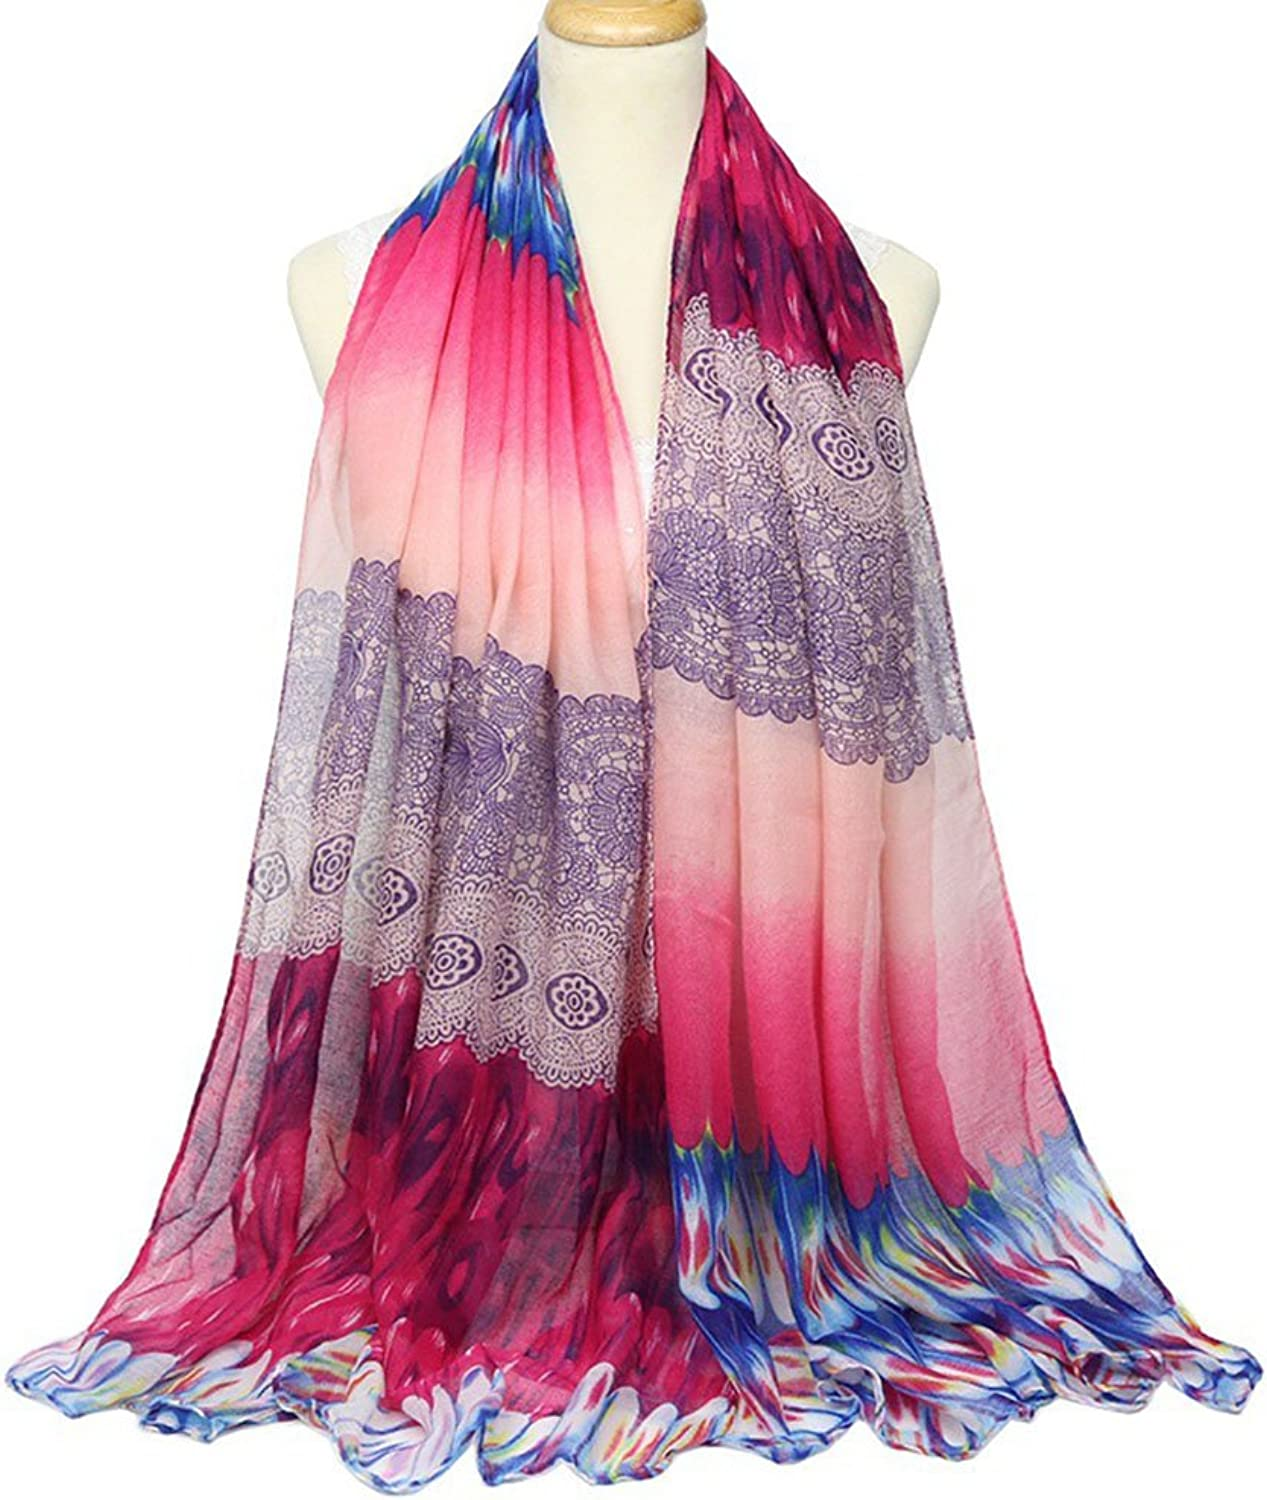 Woman Shawl Summer Silk Scarf Gradient color Long Lightweight Sunscreen Shawls For Women Decoration ( Style   3 )